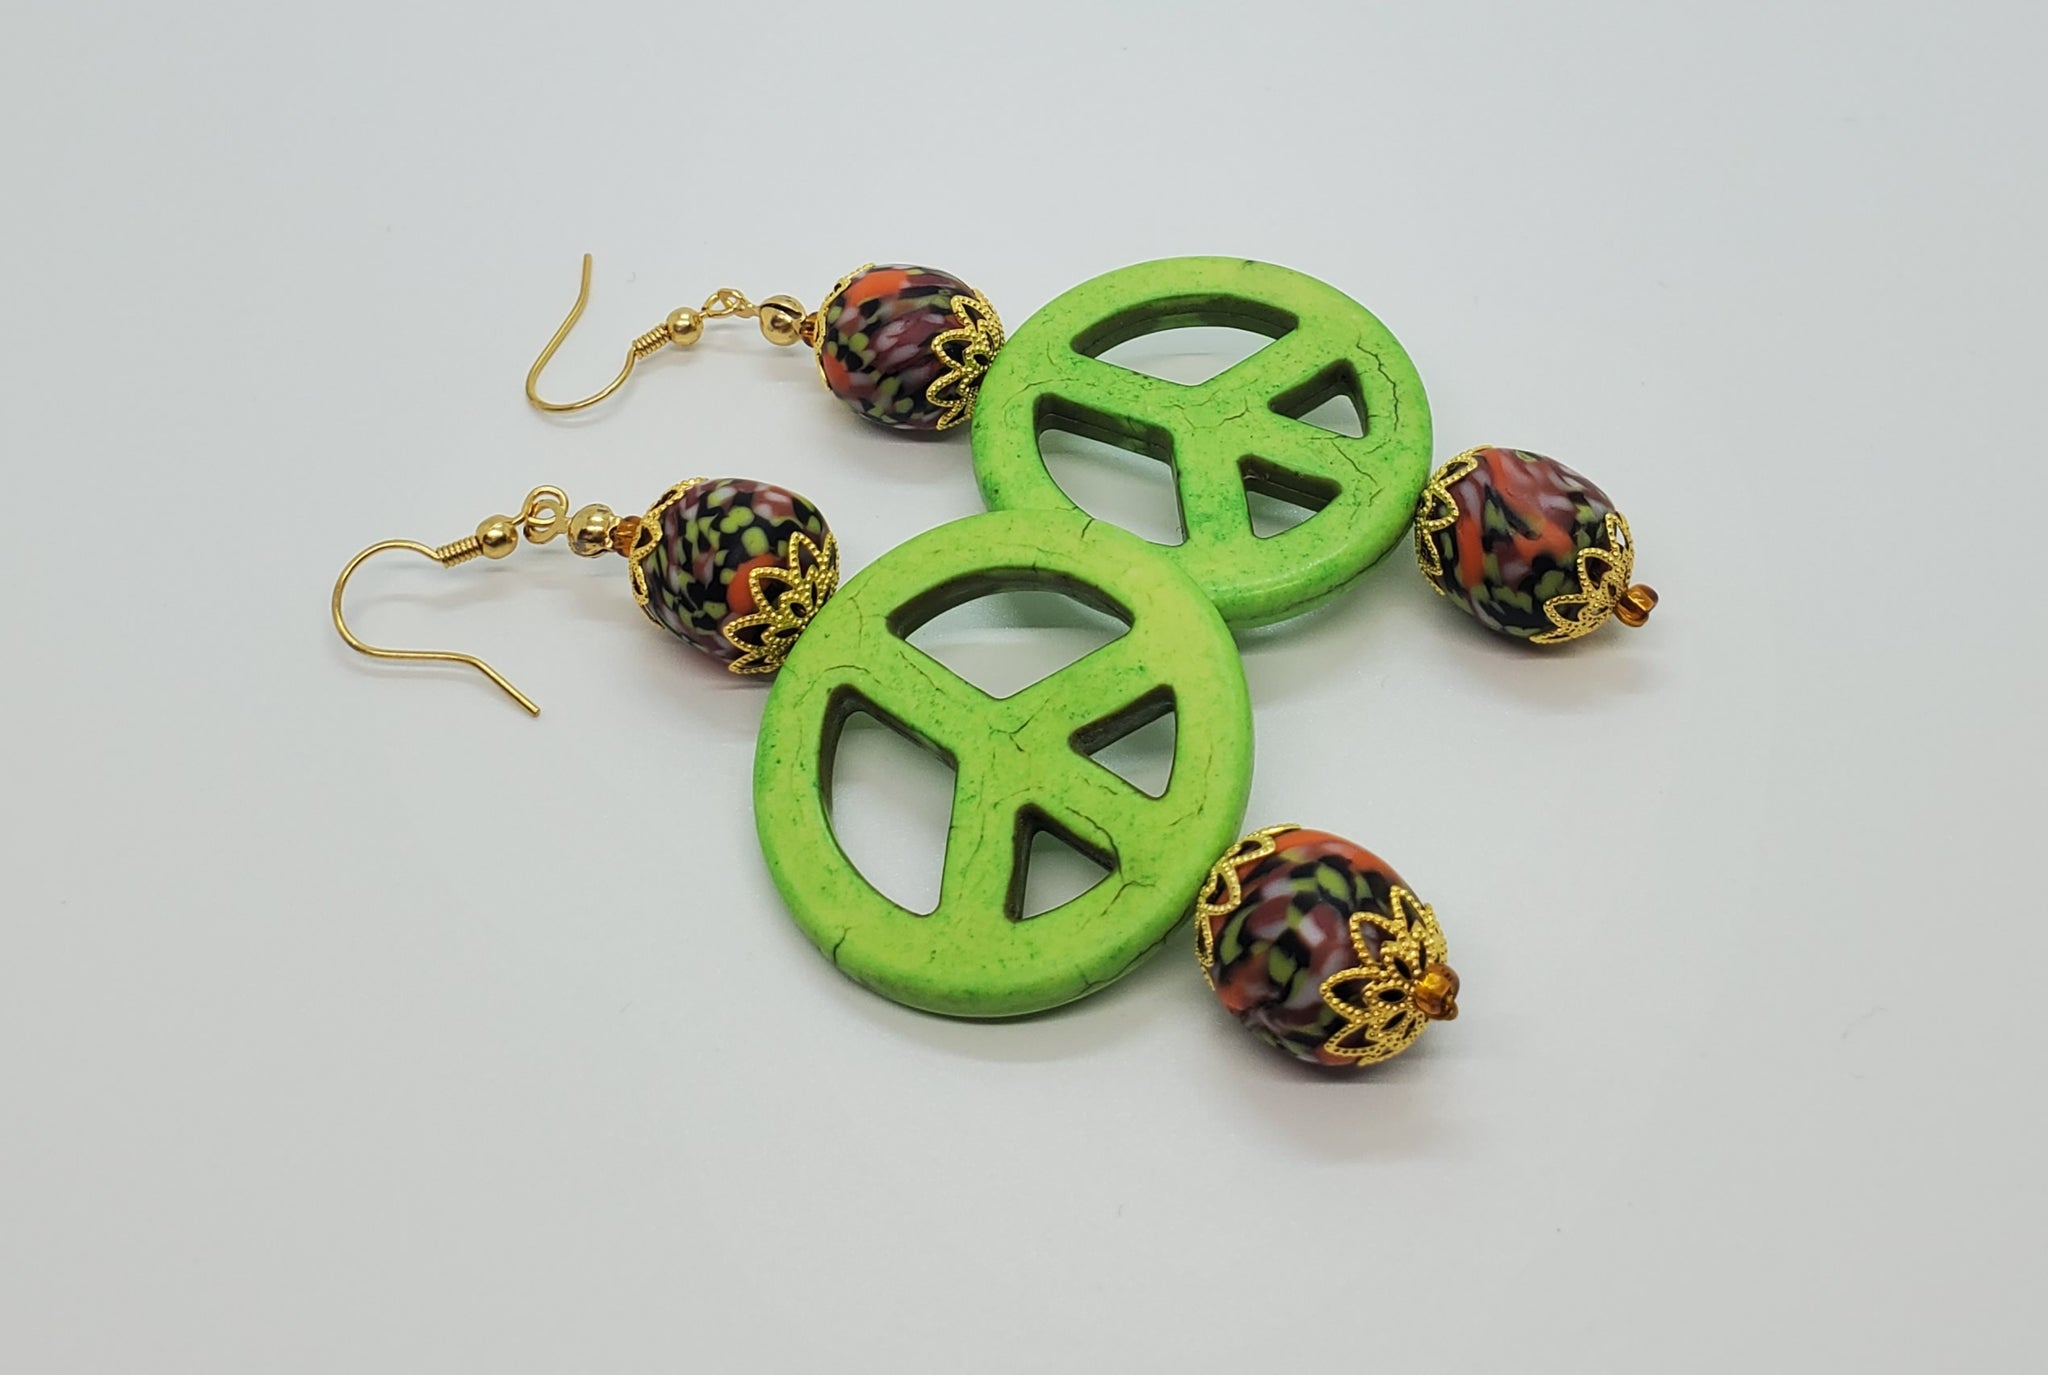 Black, Multi Krobo Beads, Dyed Green Magnesite Stones, Brass, Earrings